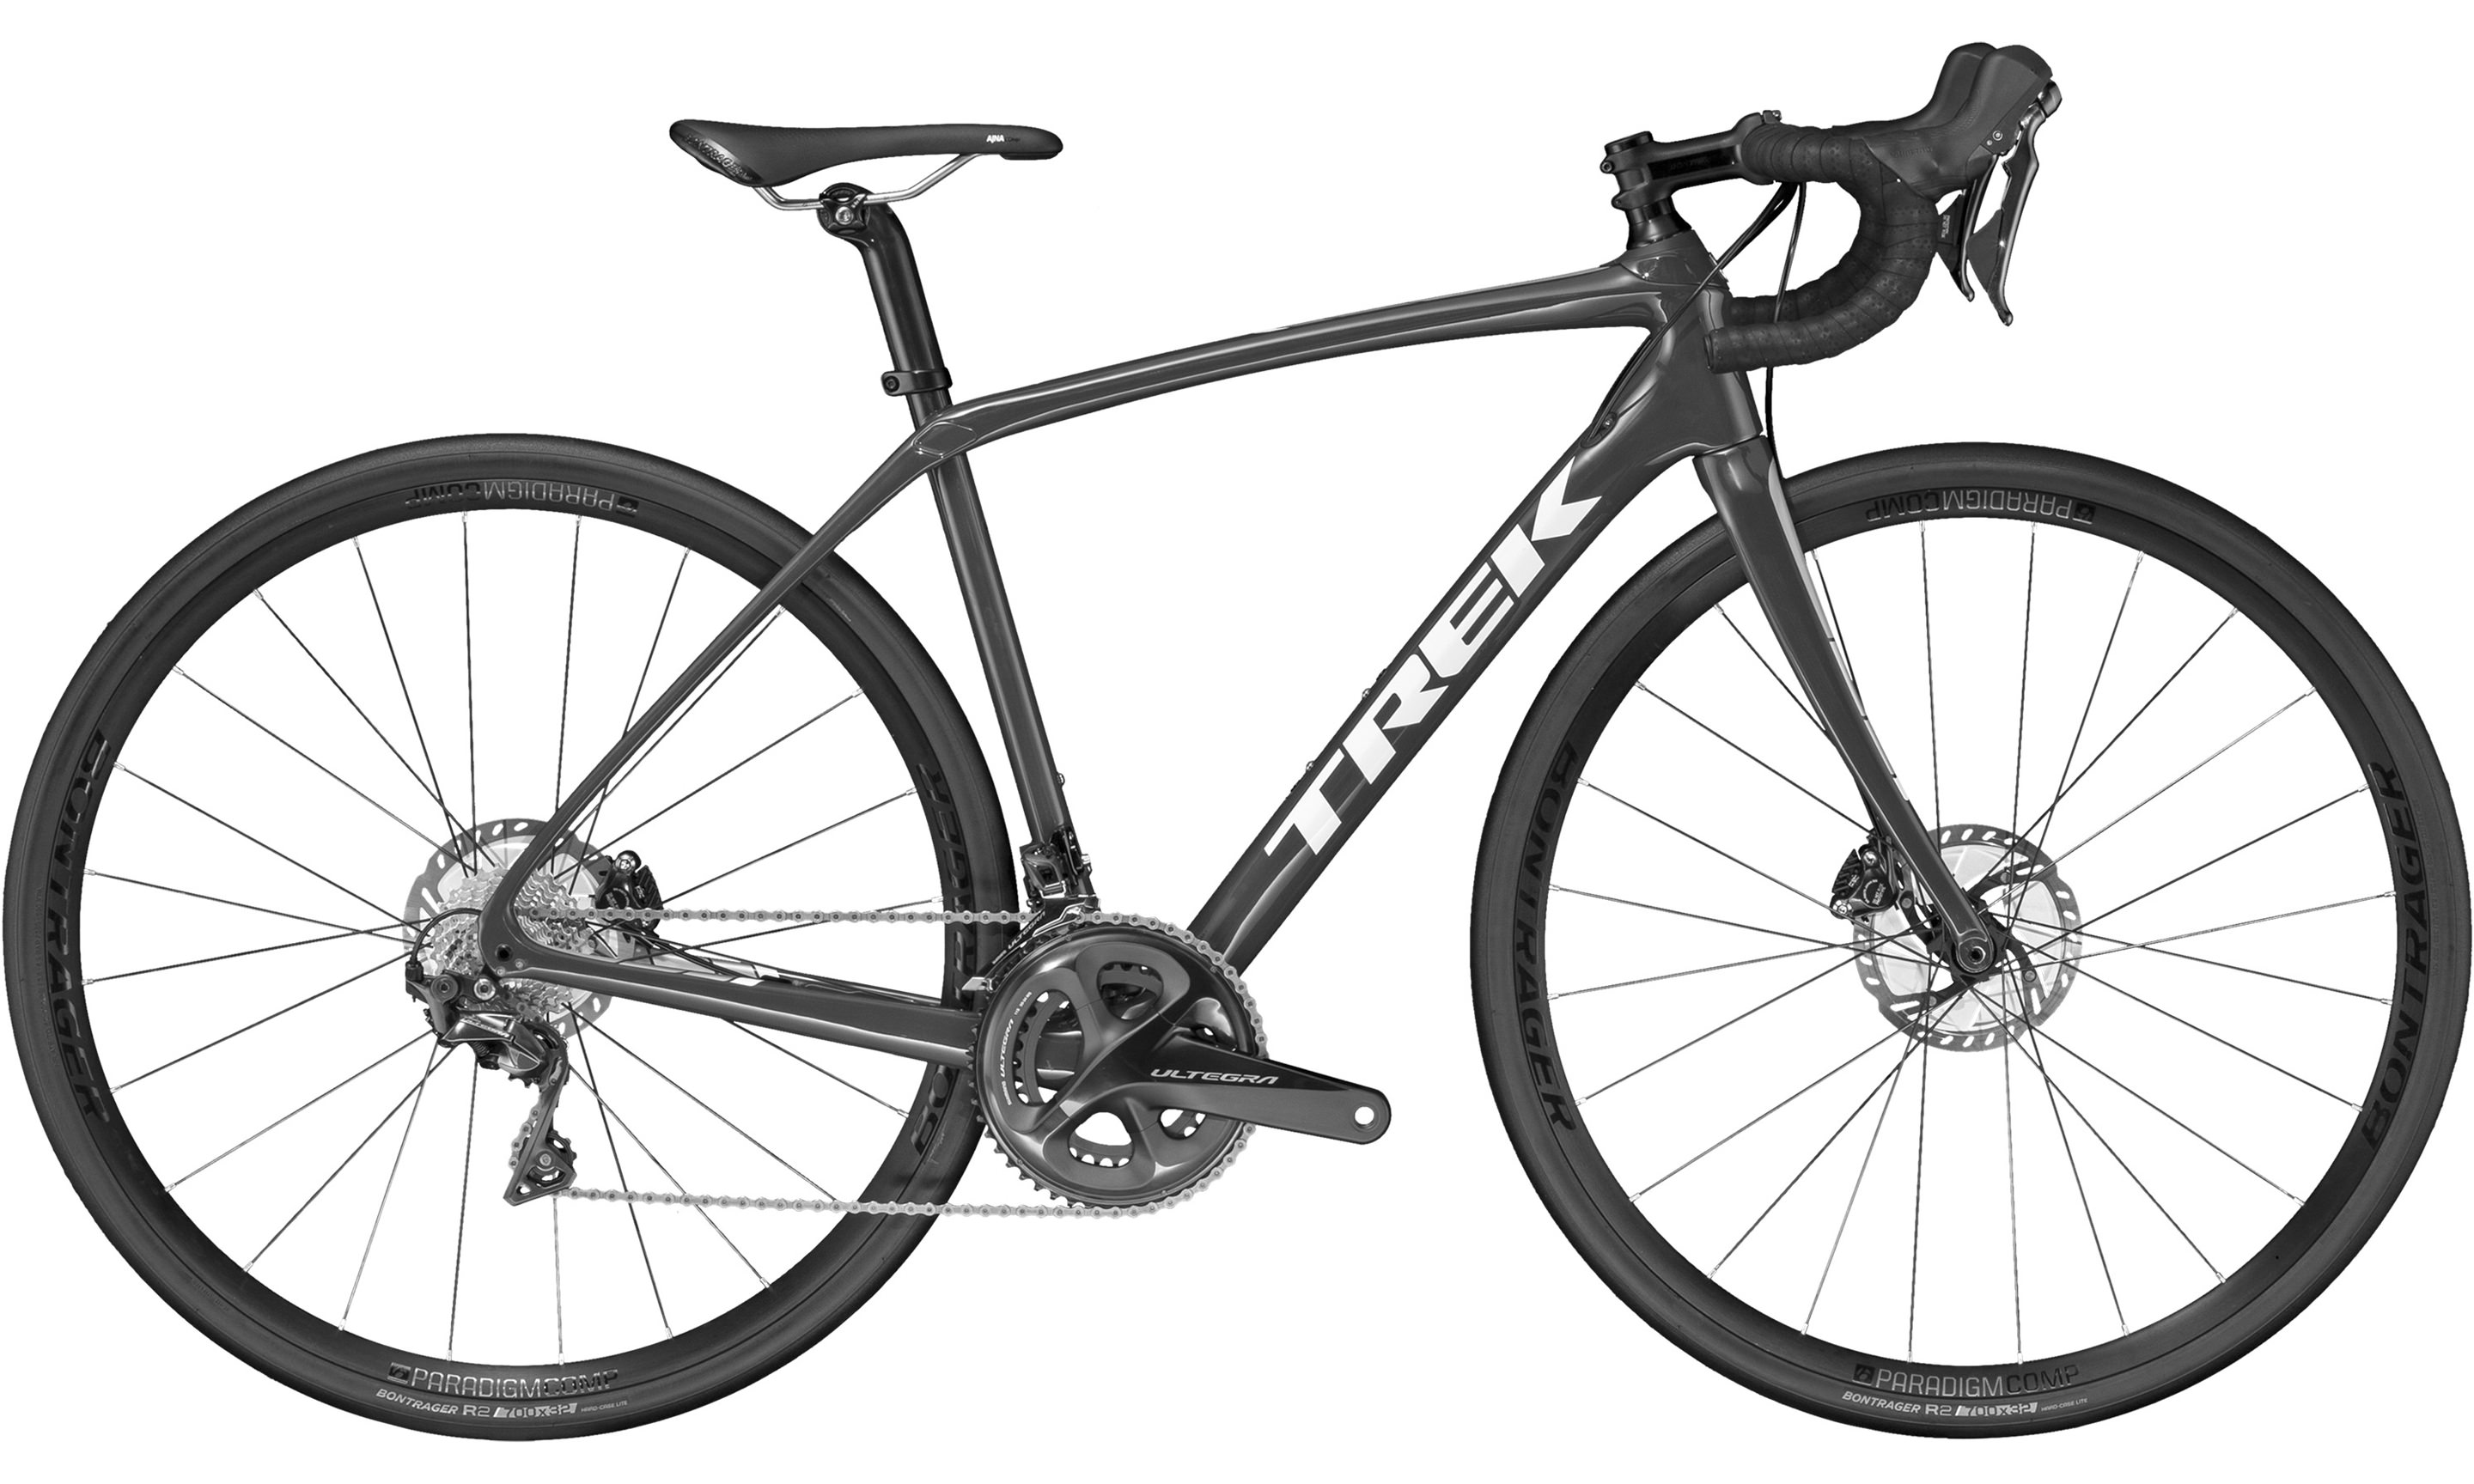 Domane SL 6 Disc Women's | Culture Vélo